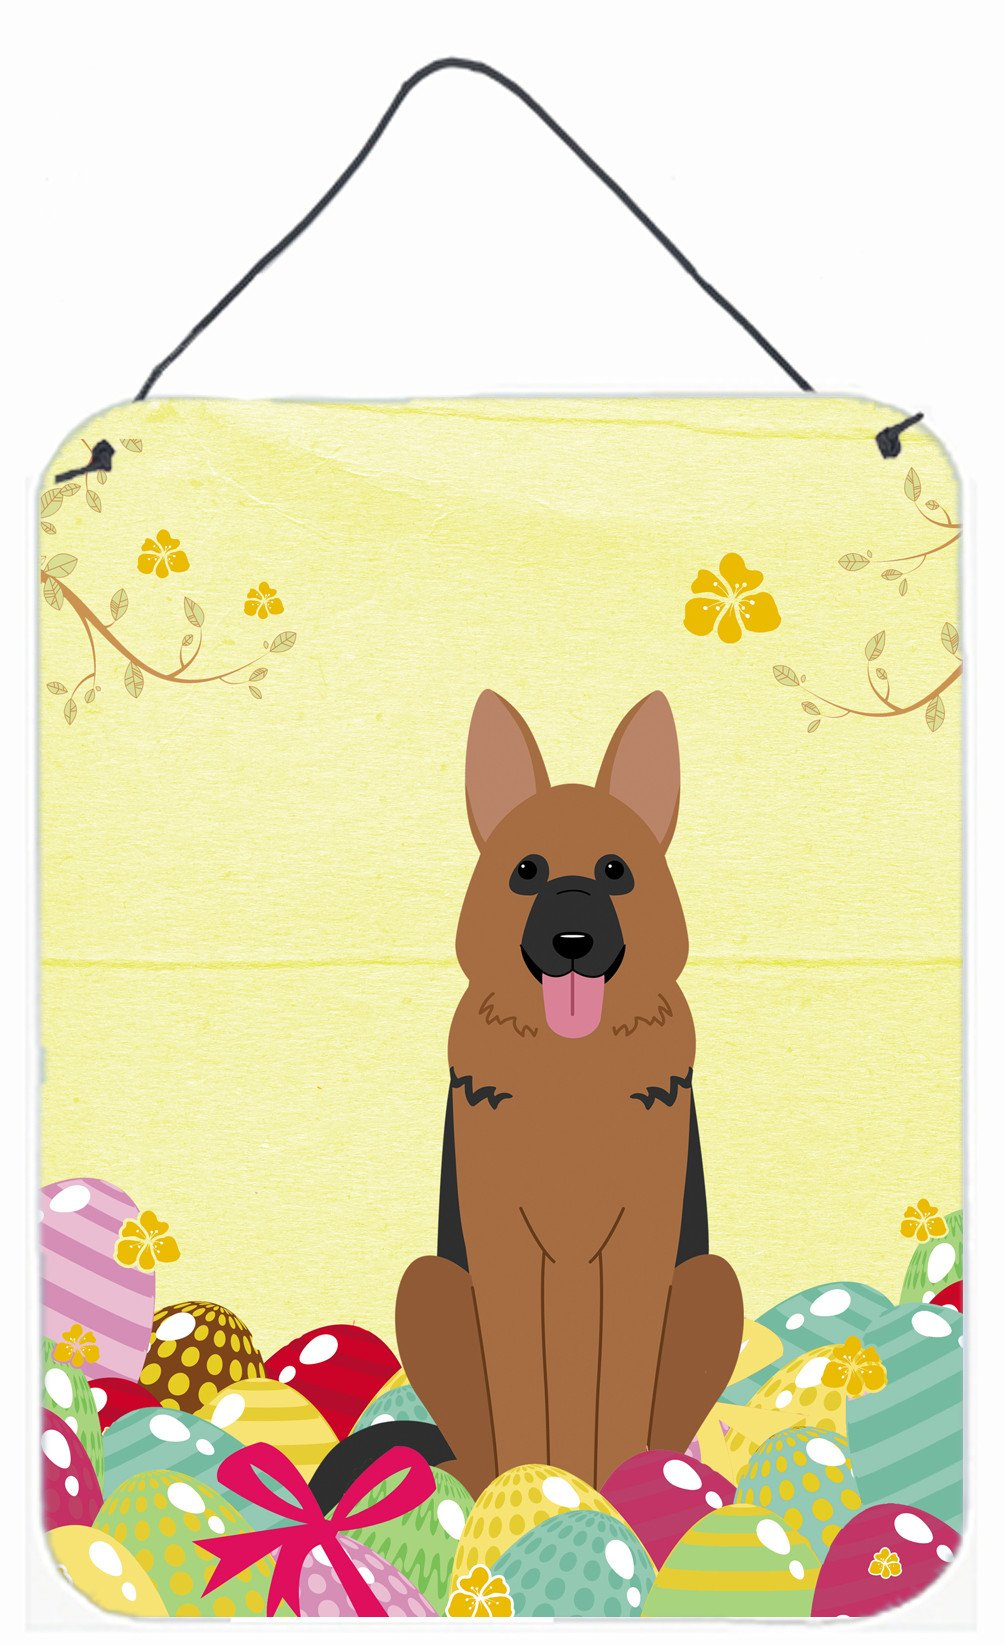 Easter Eggs German Shepherd Wall or Door Hanging Prints BB6067DS1216 by Caroline's Treasures